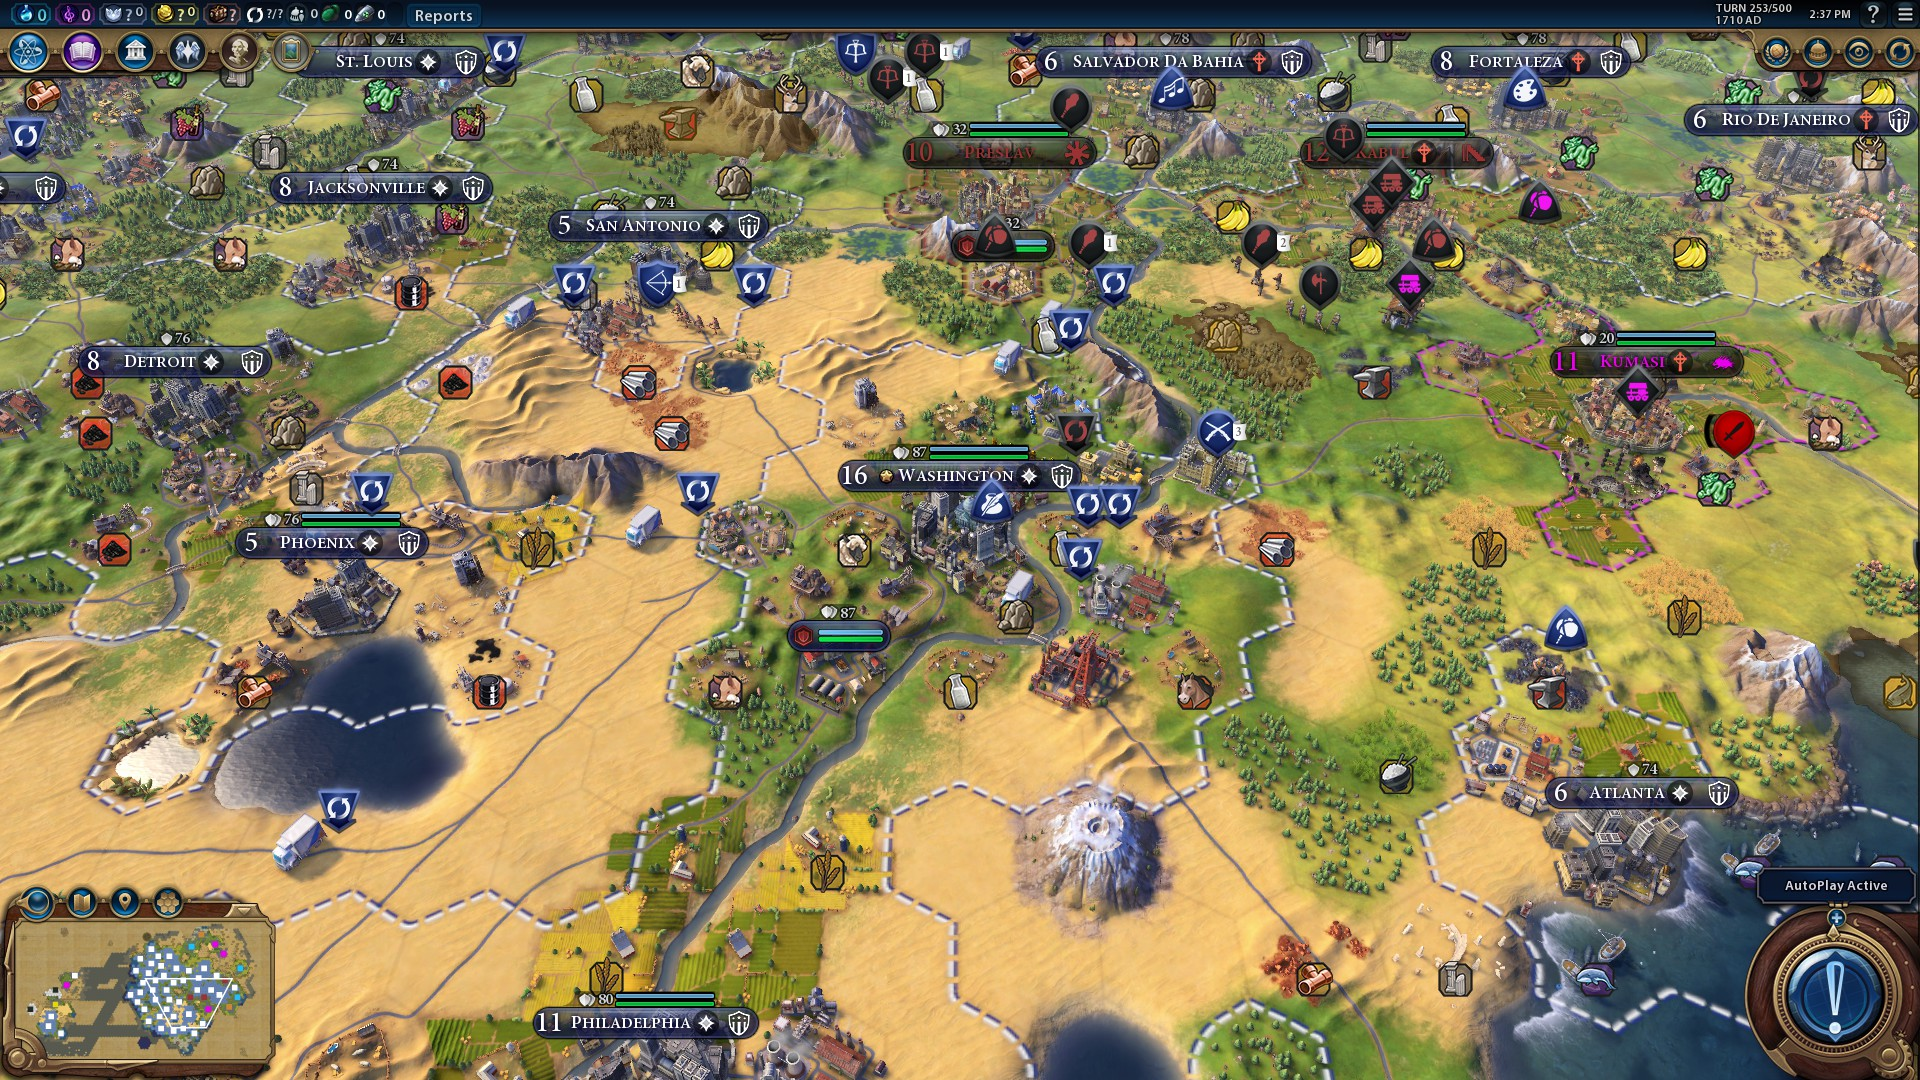 Gaming: Civilization 6 (DX12) - The Intel Core i9-9980XE CPU Review